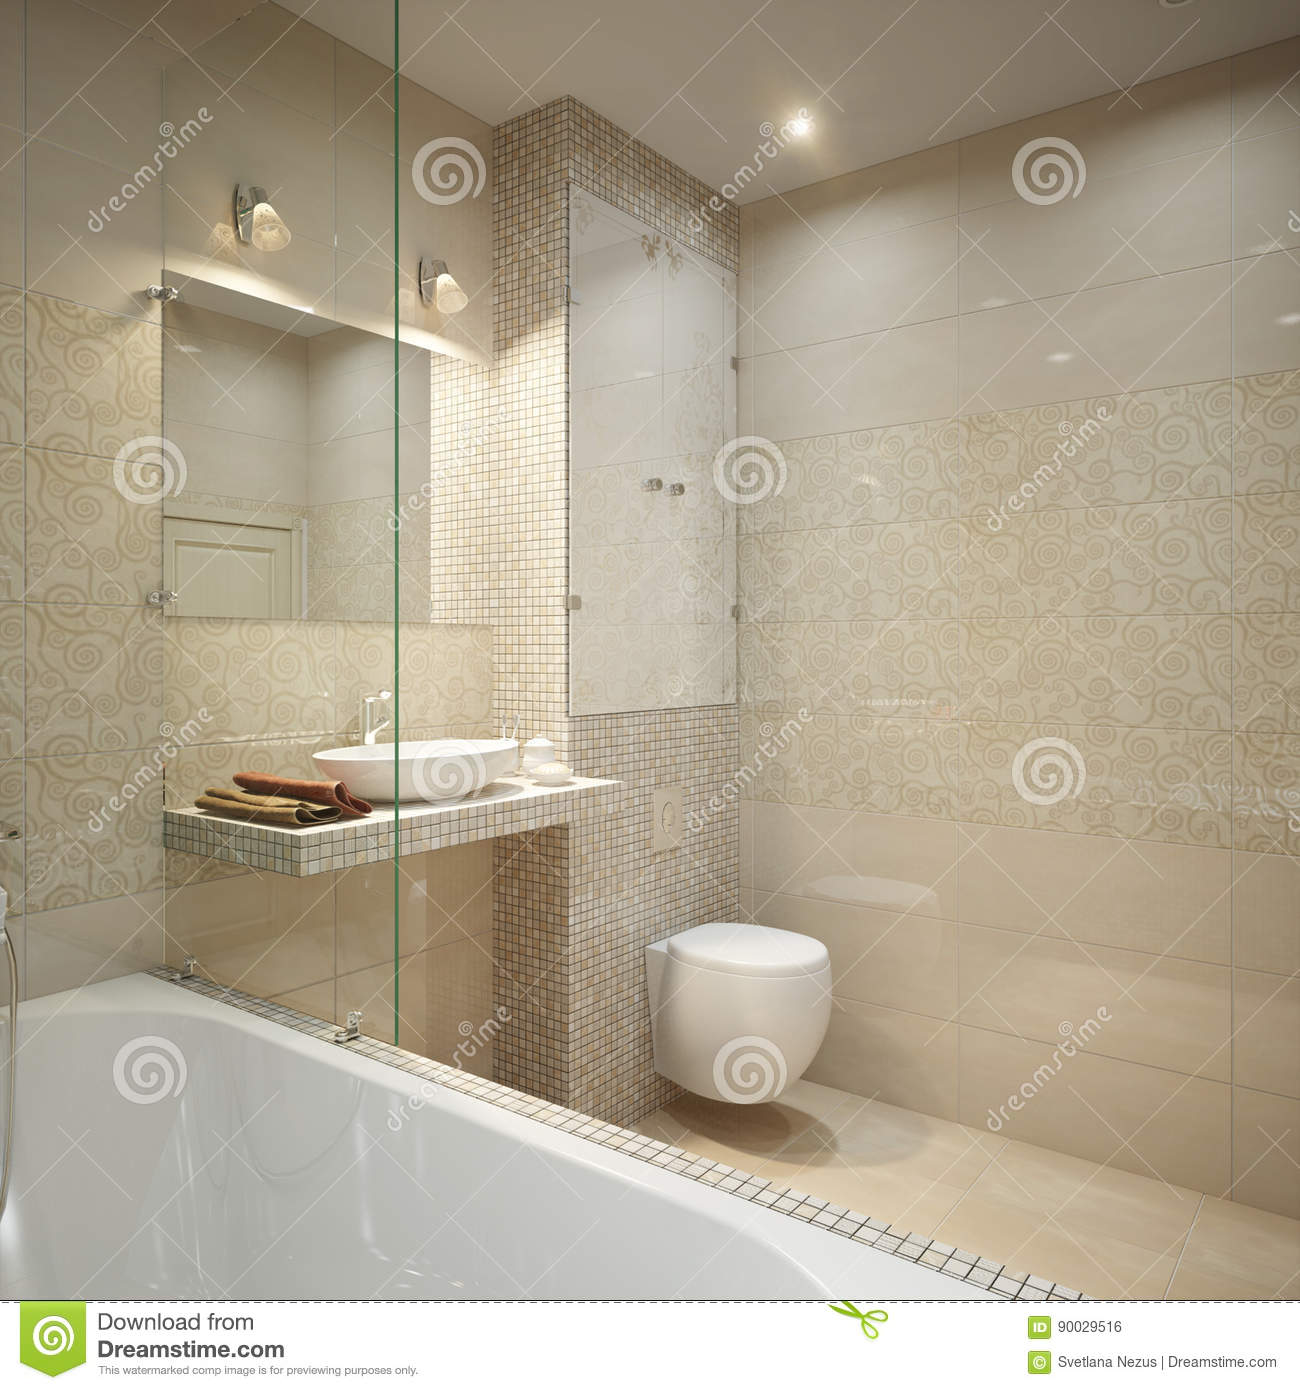 Modern Bathroom Interior Design Stock Illustration Illustration Of House Design 90029516